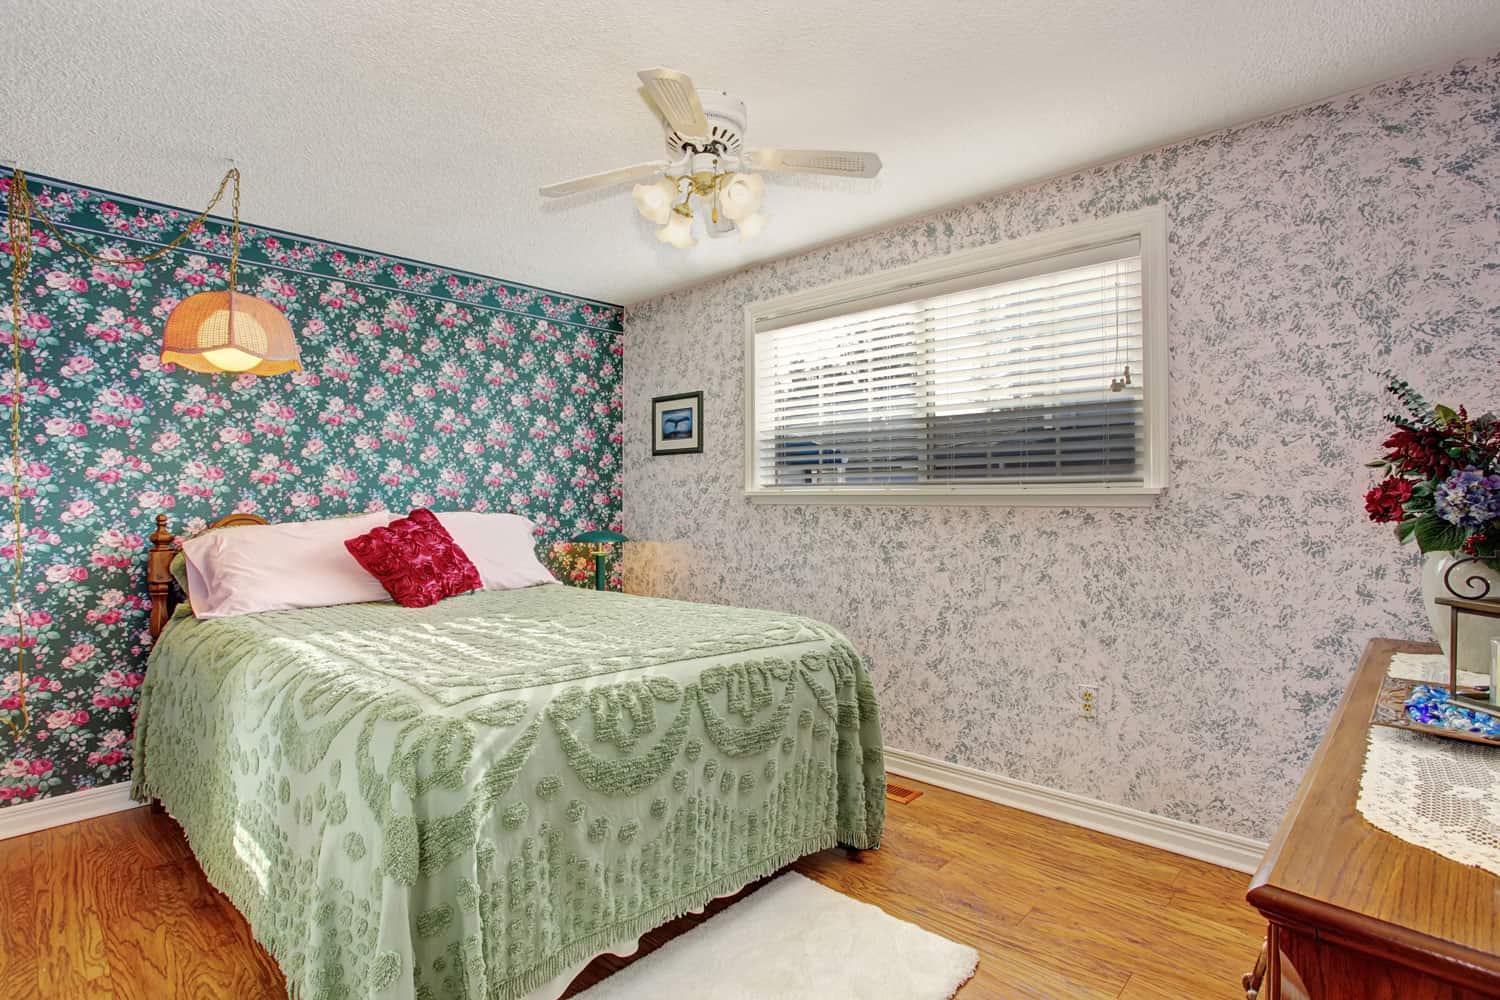 Floral themed basement bedroom with flora wallpapers, hardwood flooring, and green floral bedding